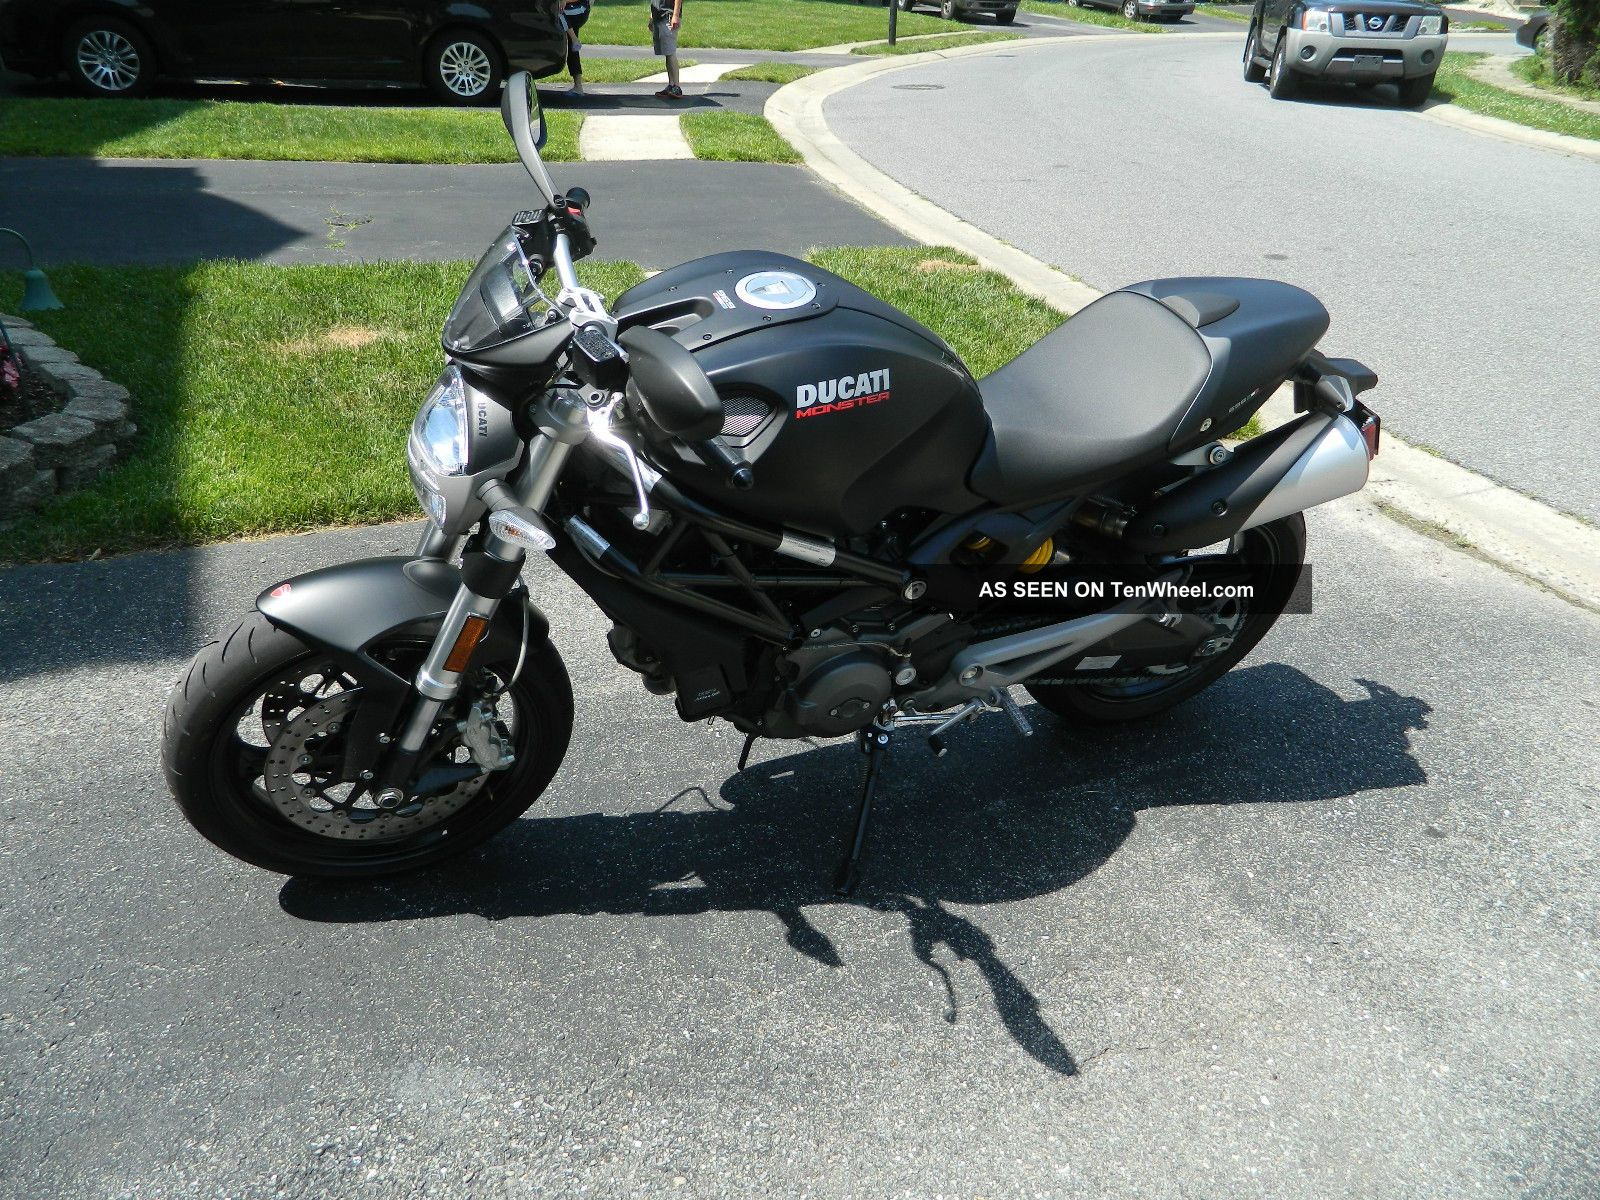 Ducati Monster 696 2011 Black Stealth Color Monster photo